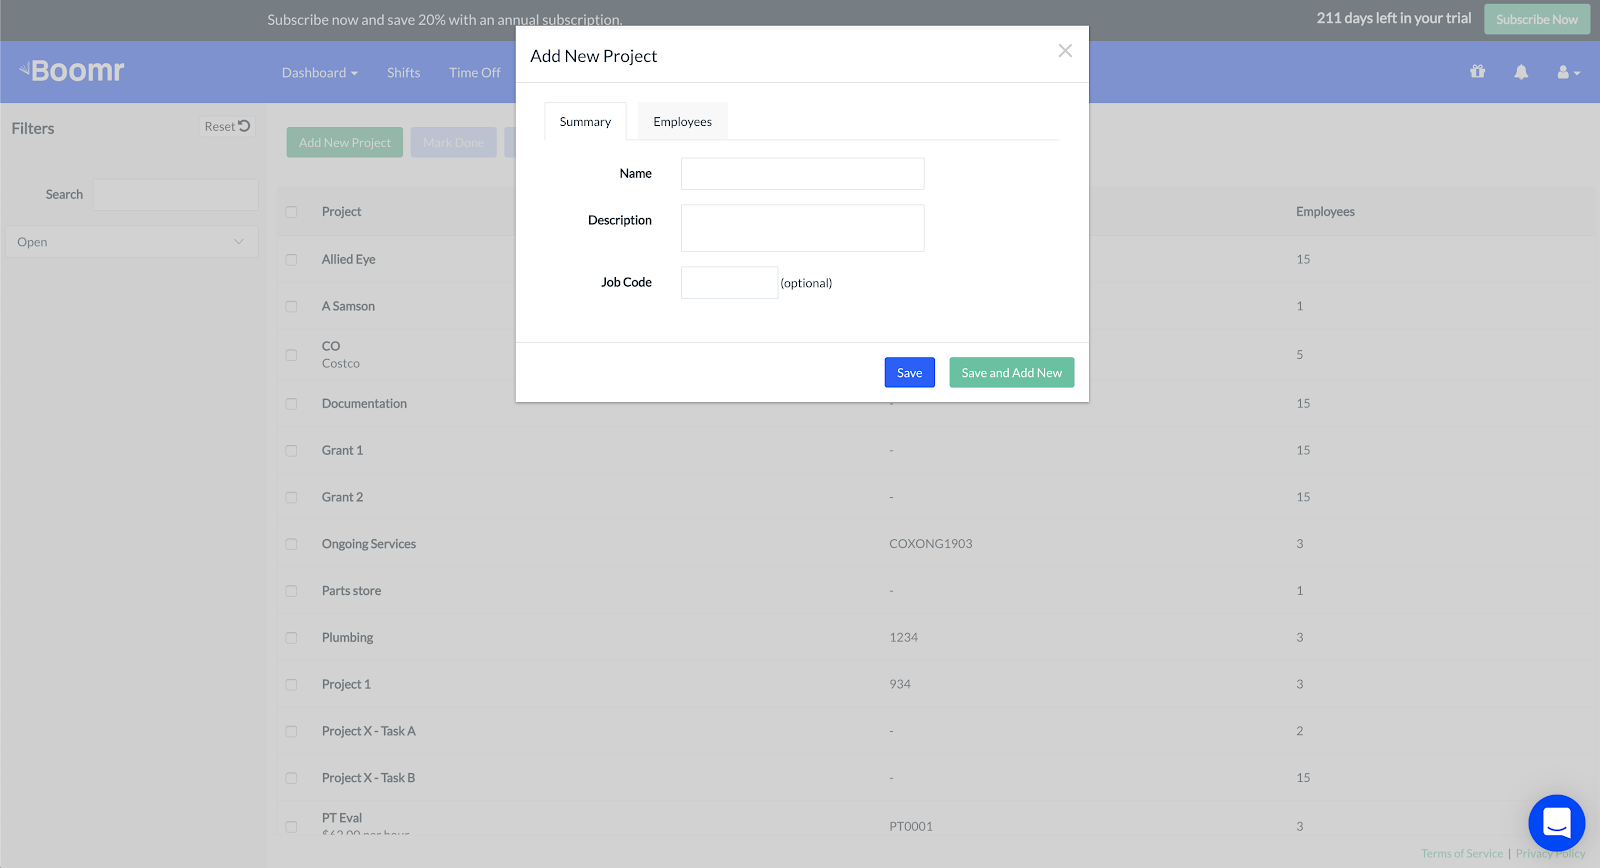 Screenshot showing the new window that will appear asking for details of your project